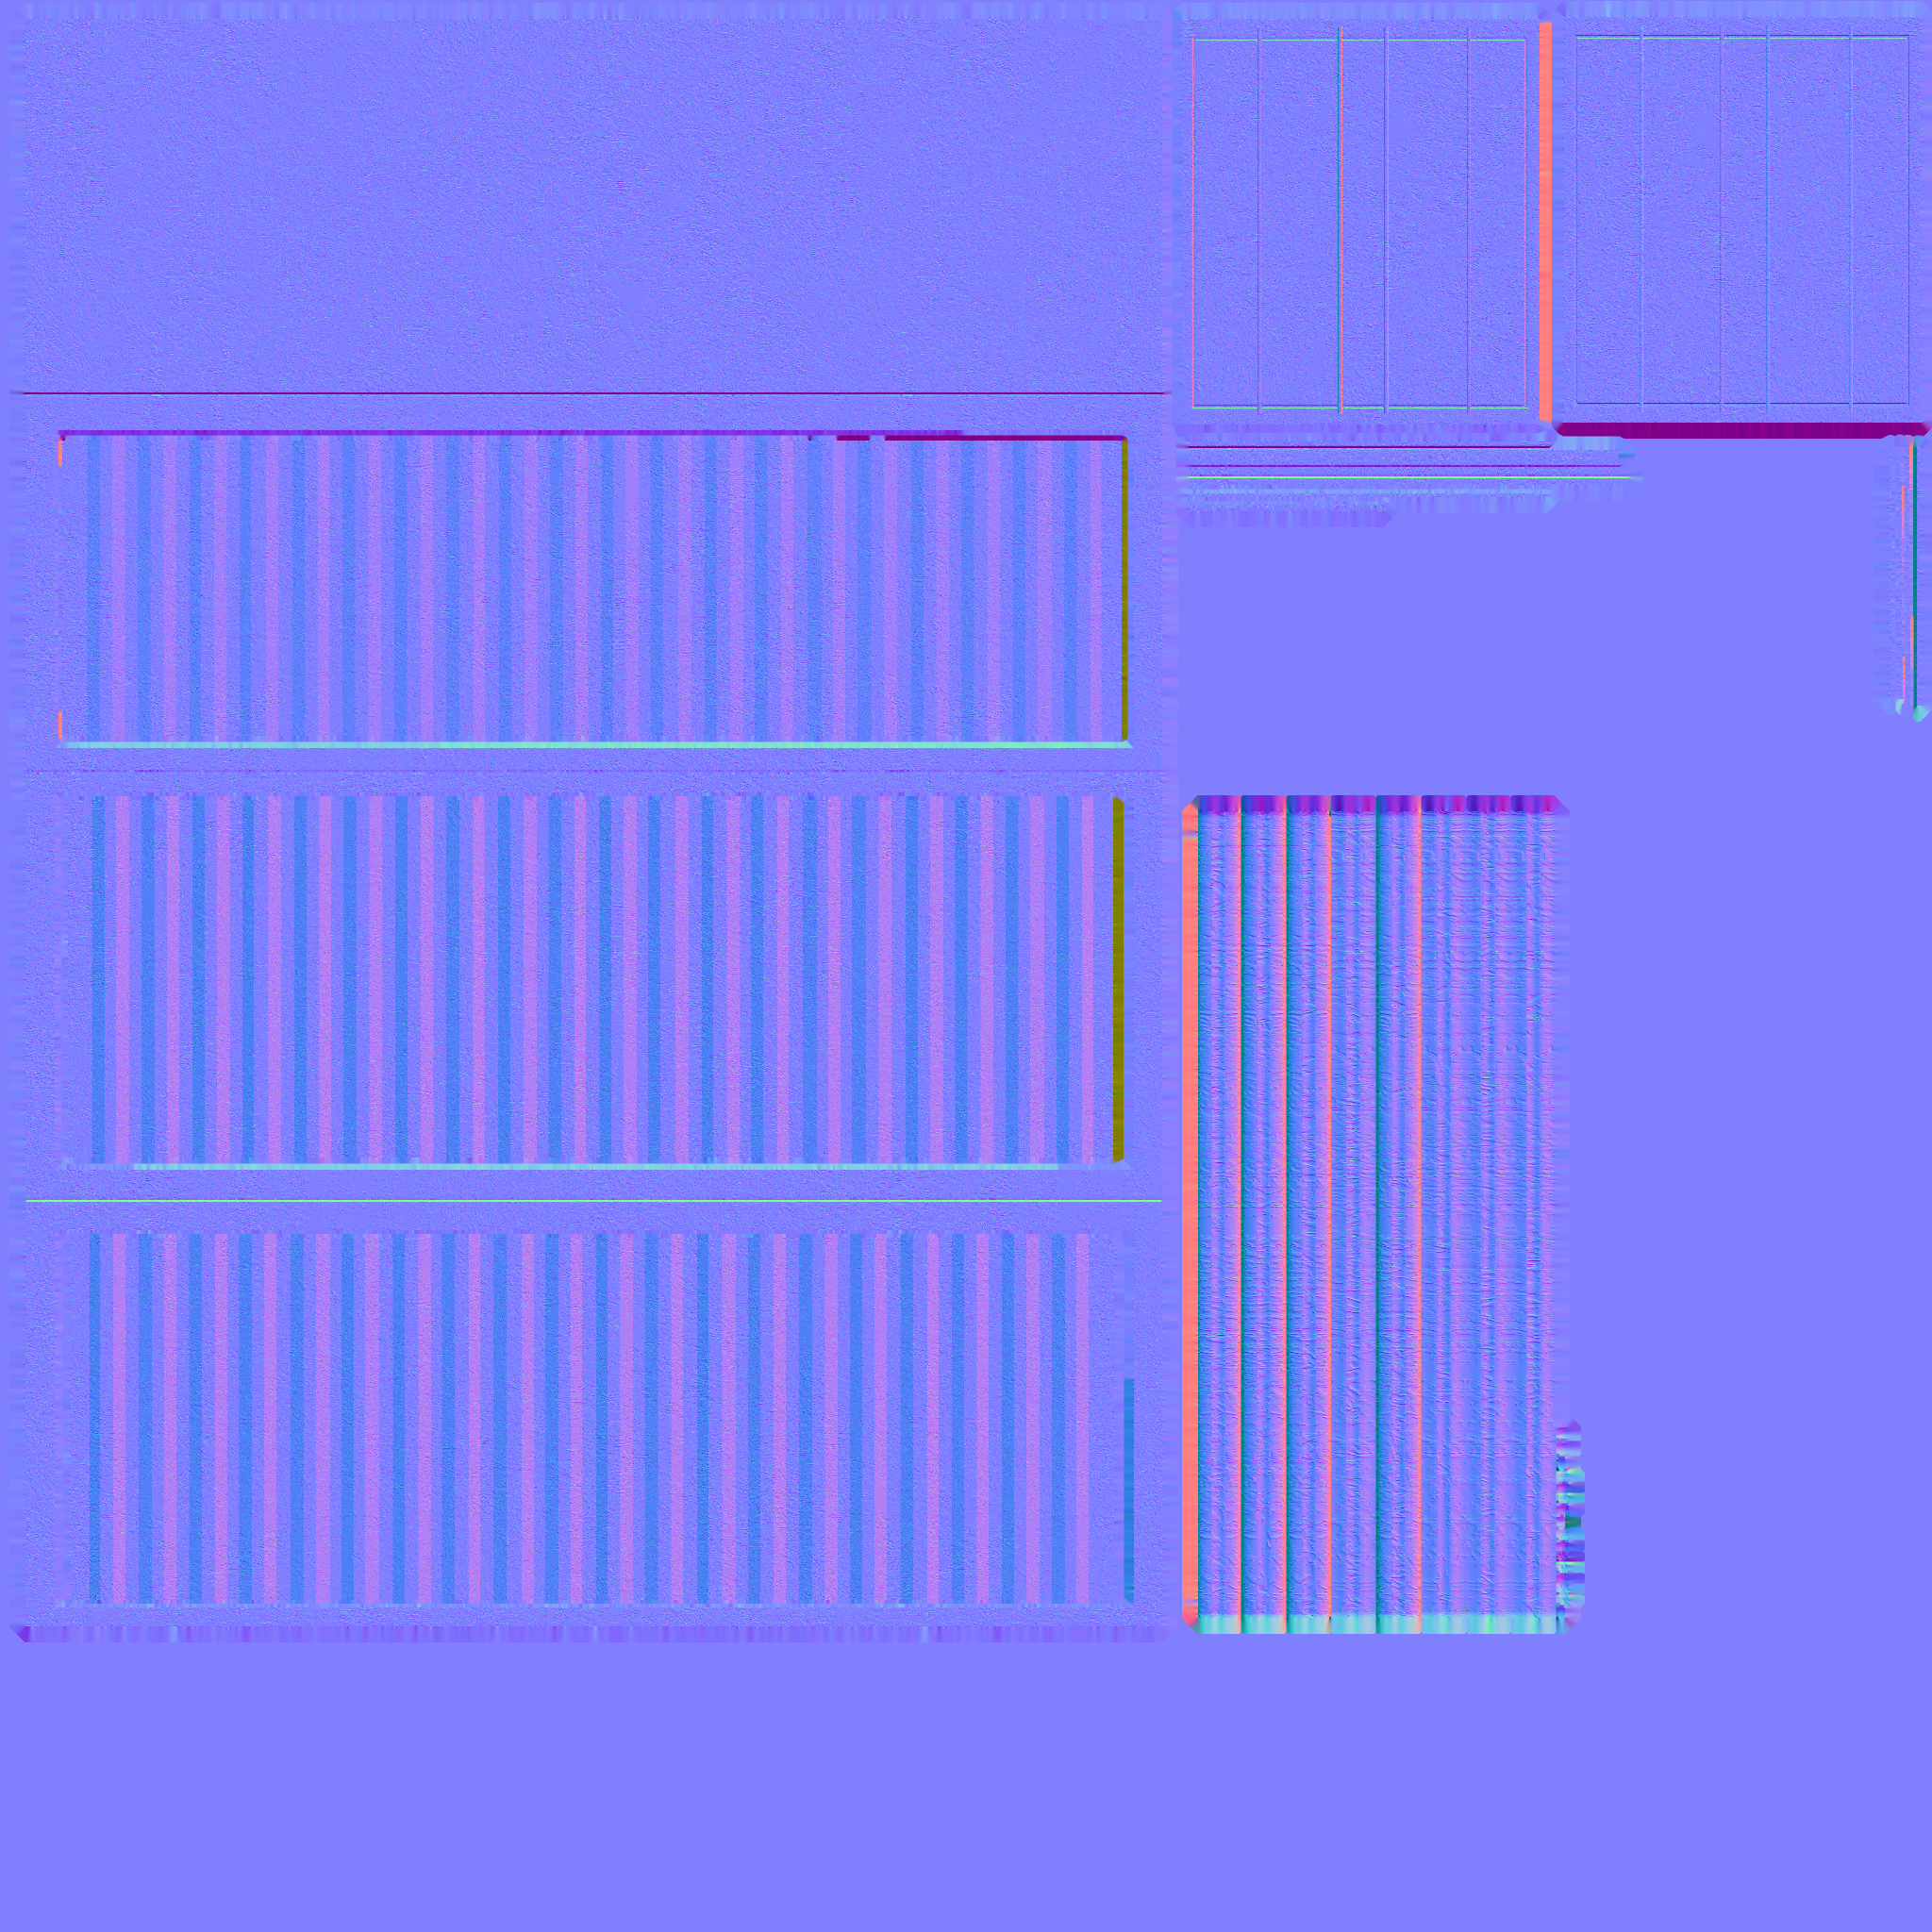 library_custom/stklib/stklib_container_a/container_w_noise_norm.png